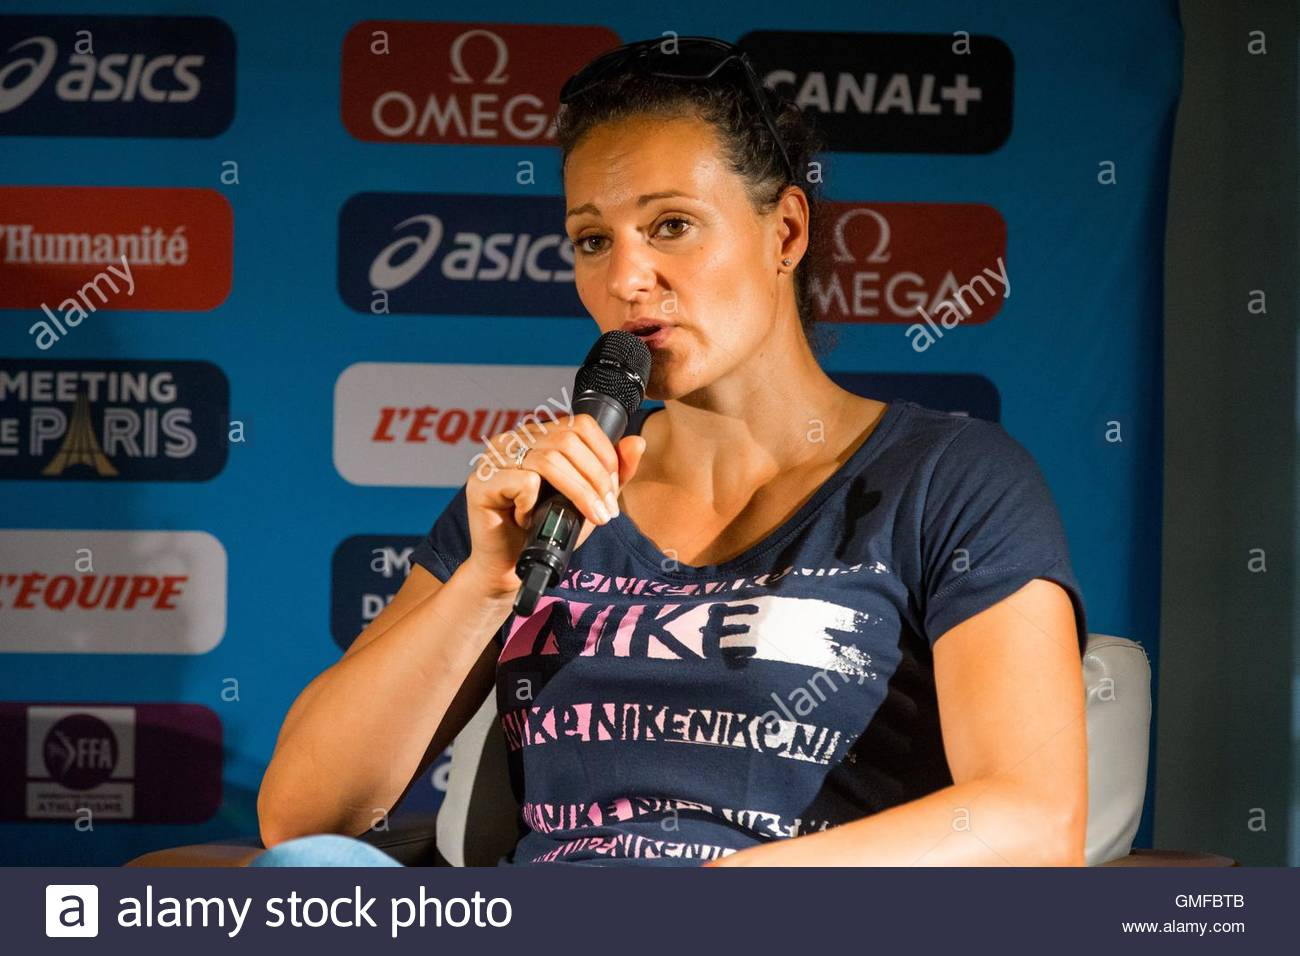 Paris, France. 26th Aug, 2016. French discus thrower Mélina Robert-Michon takes part in a press conference - Stock Image